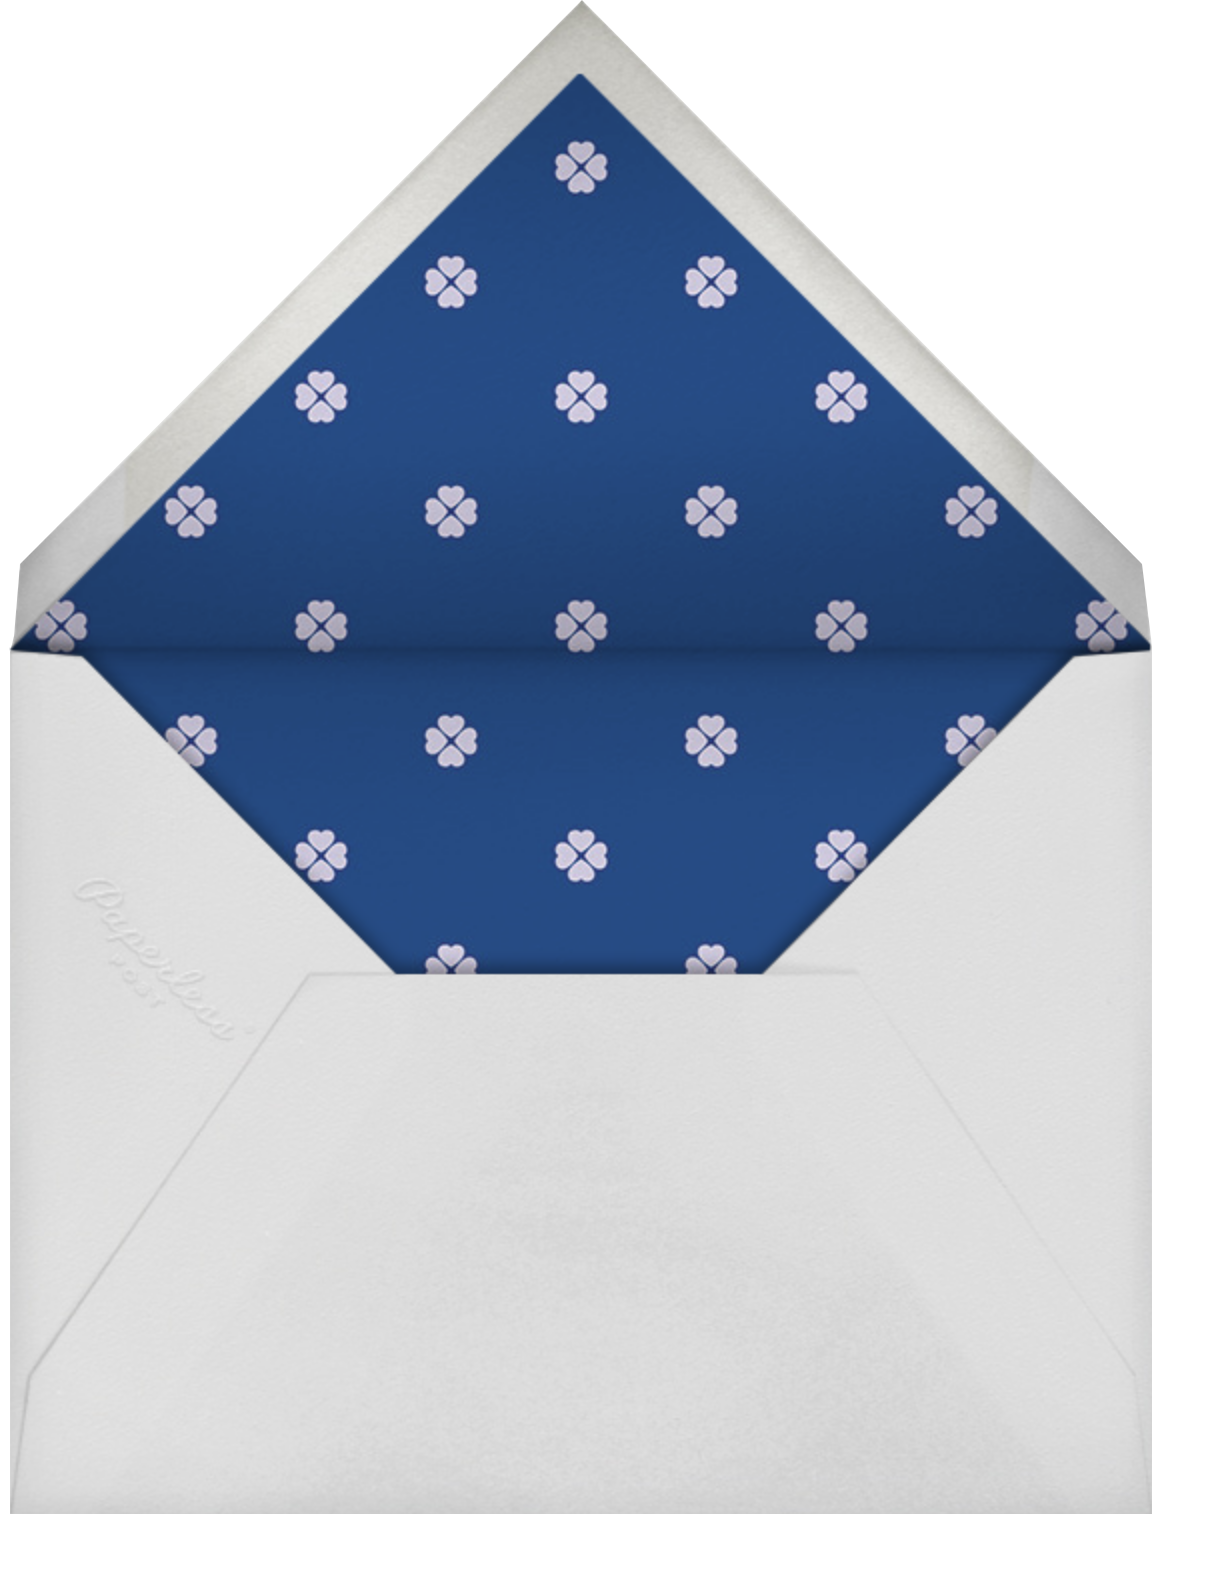 Colorblocked Stripes - Lilac/Navy - kate spade new york - Adult birthday - envelope back